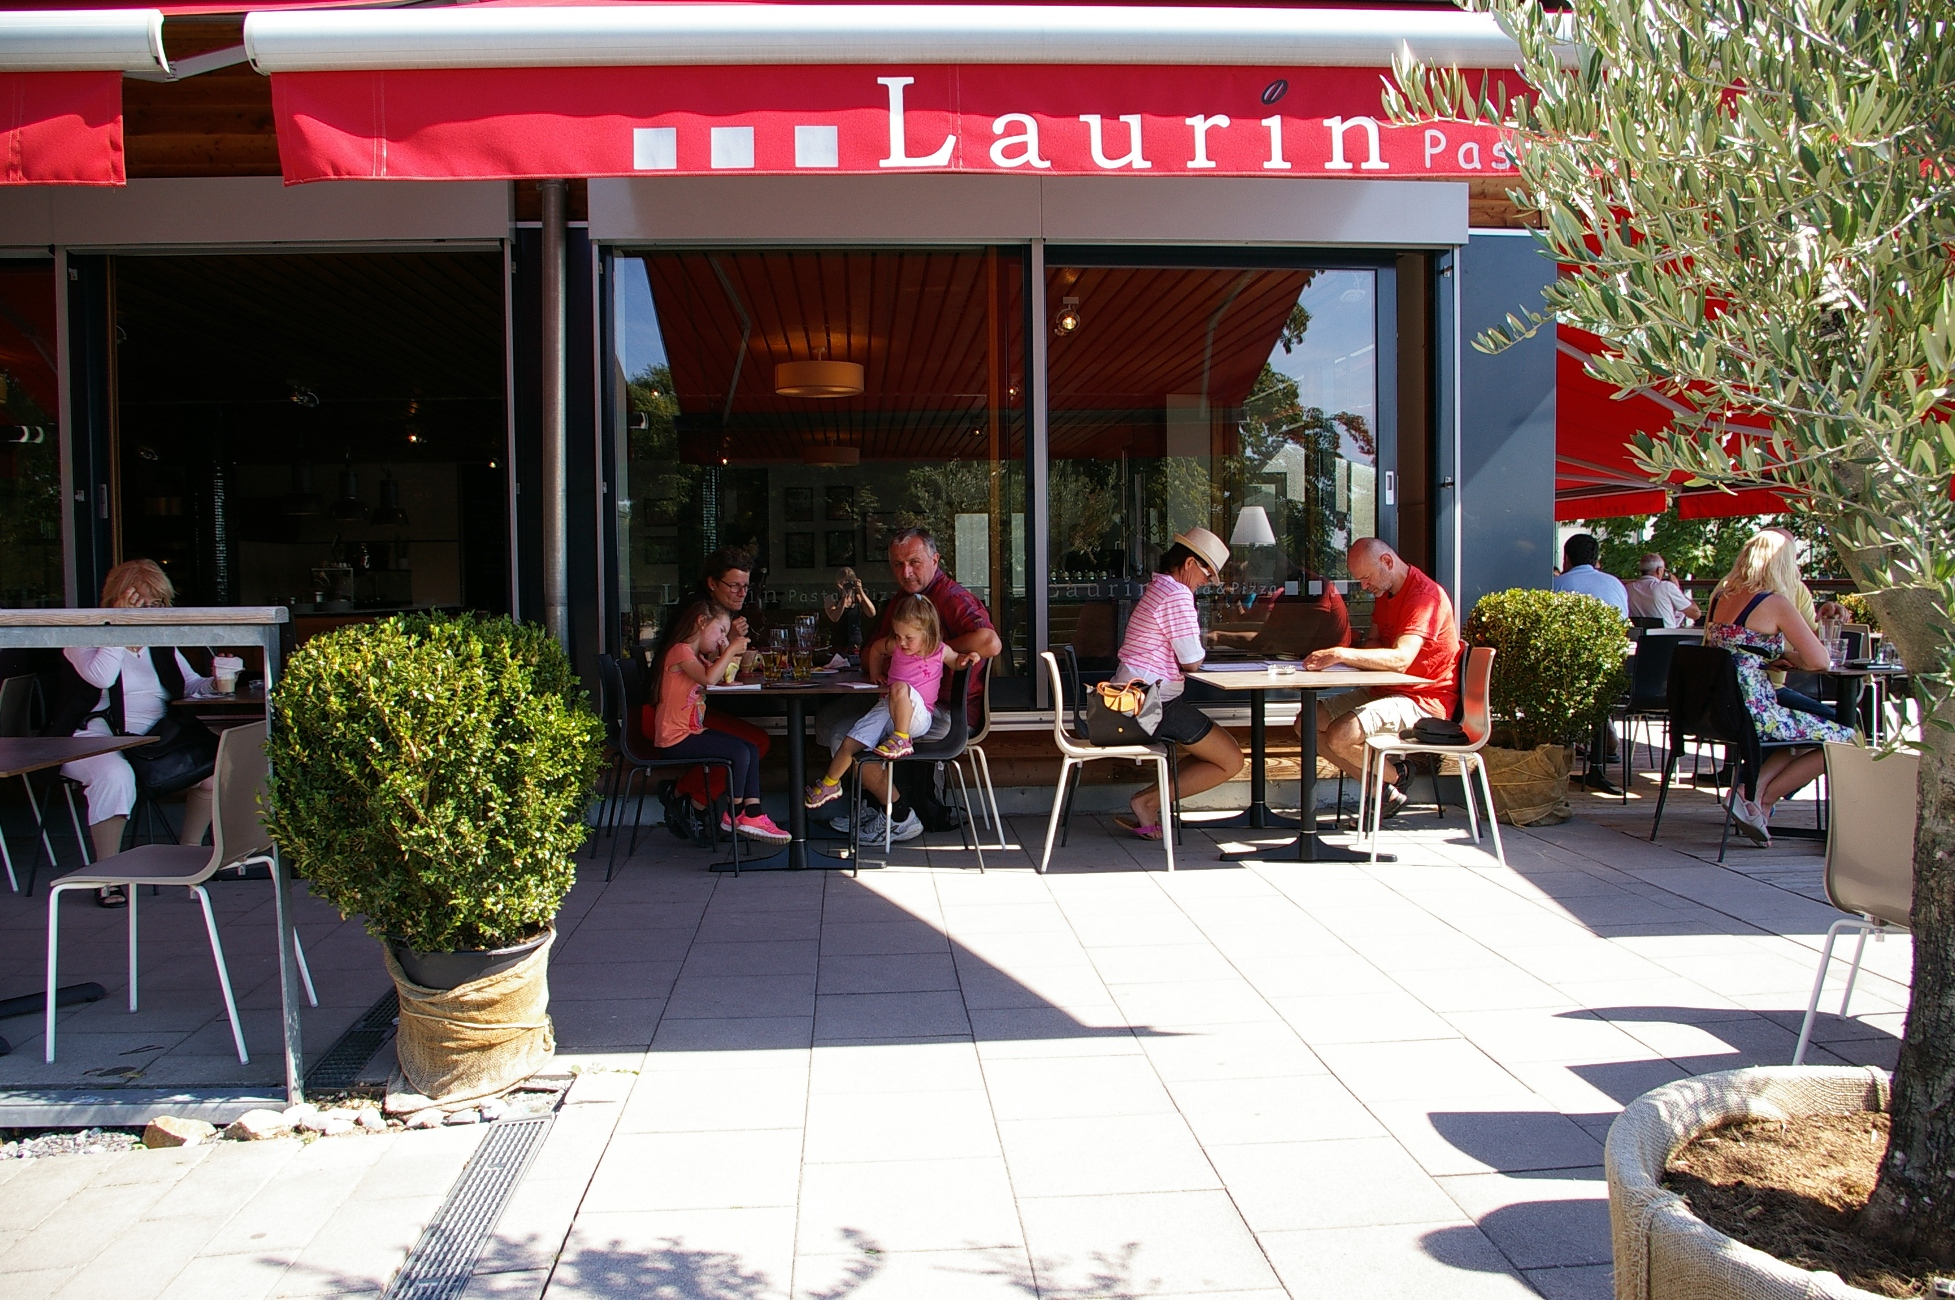 Laurin Pasta & Pizza in Deggendorf